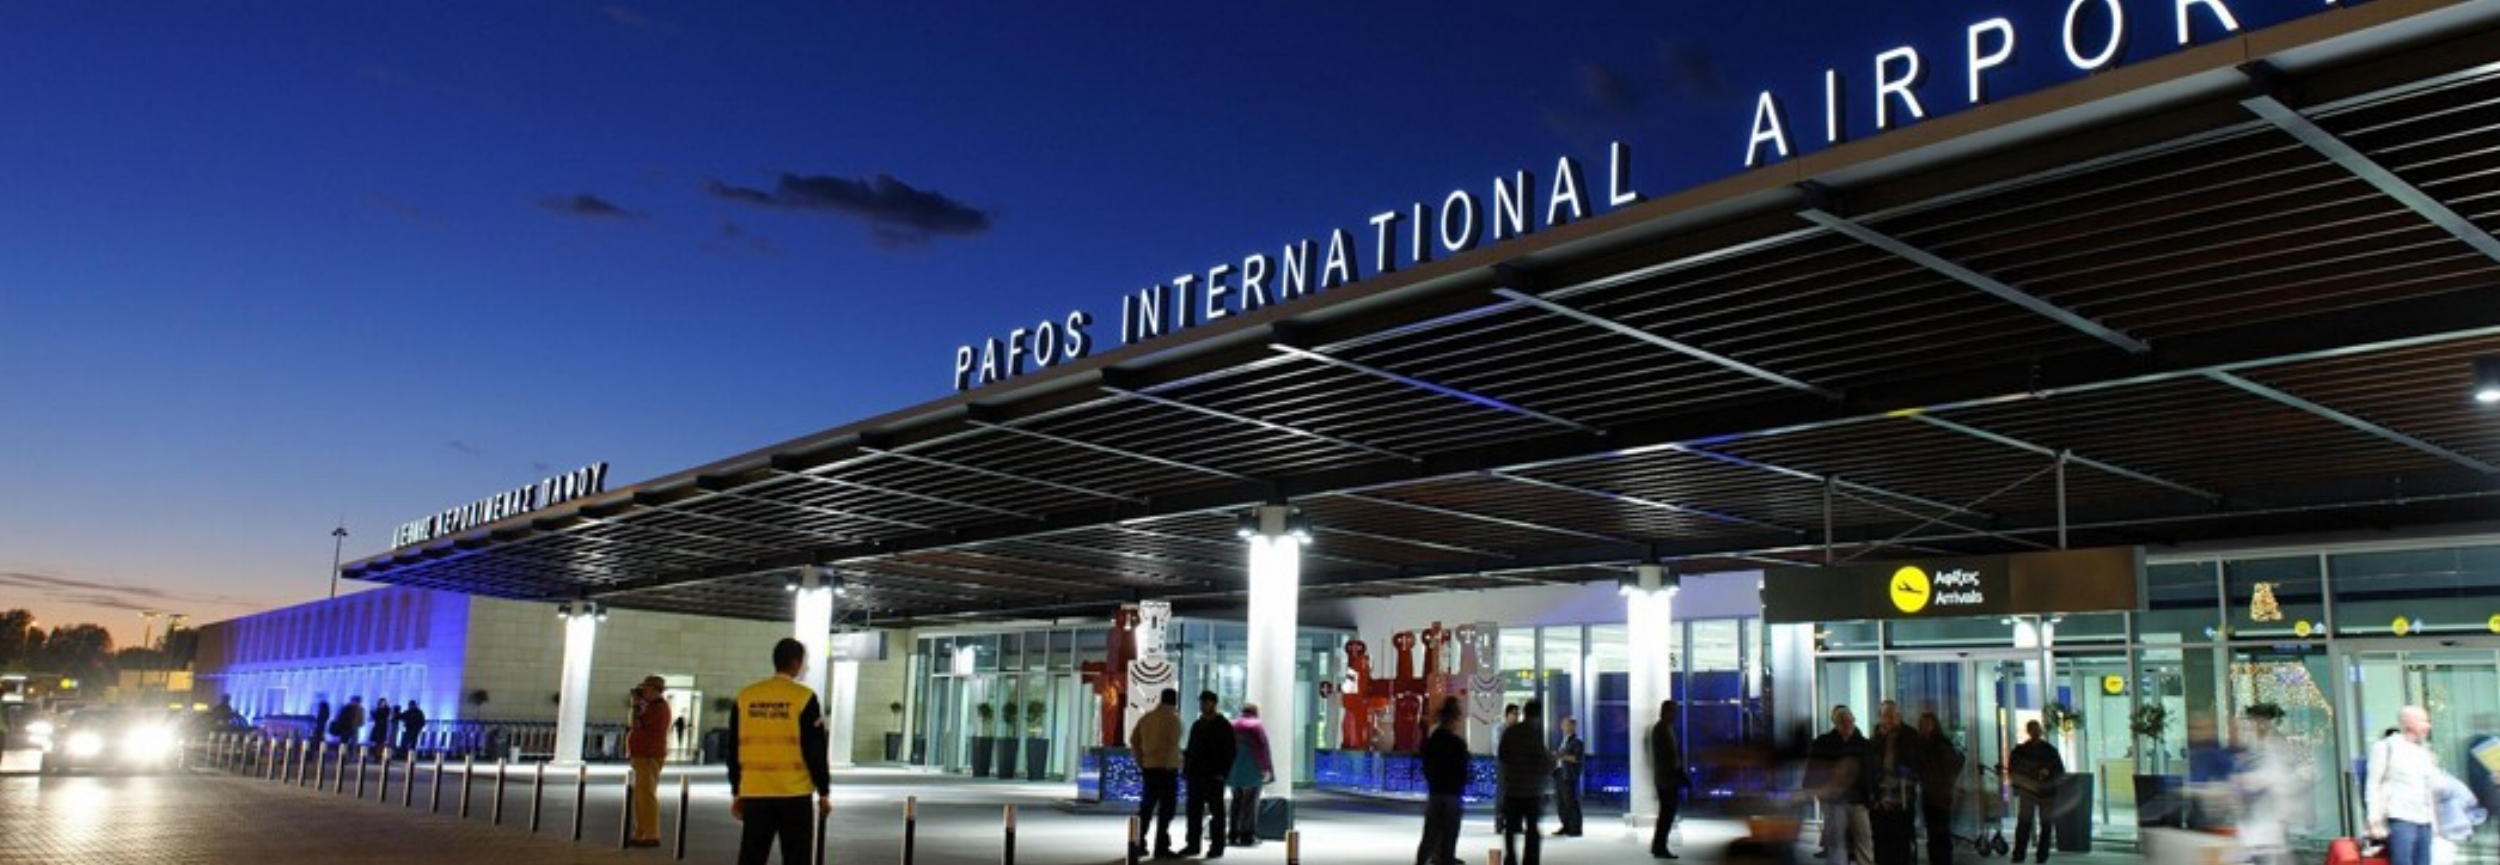 Pafos Airport.jpg